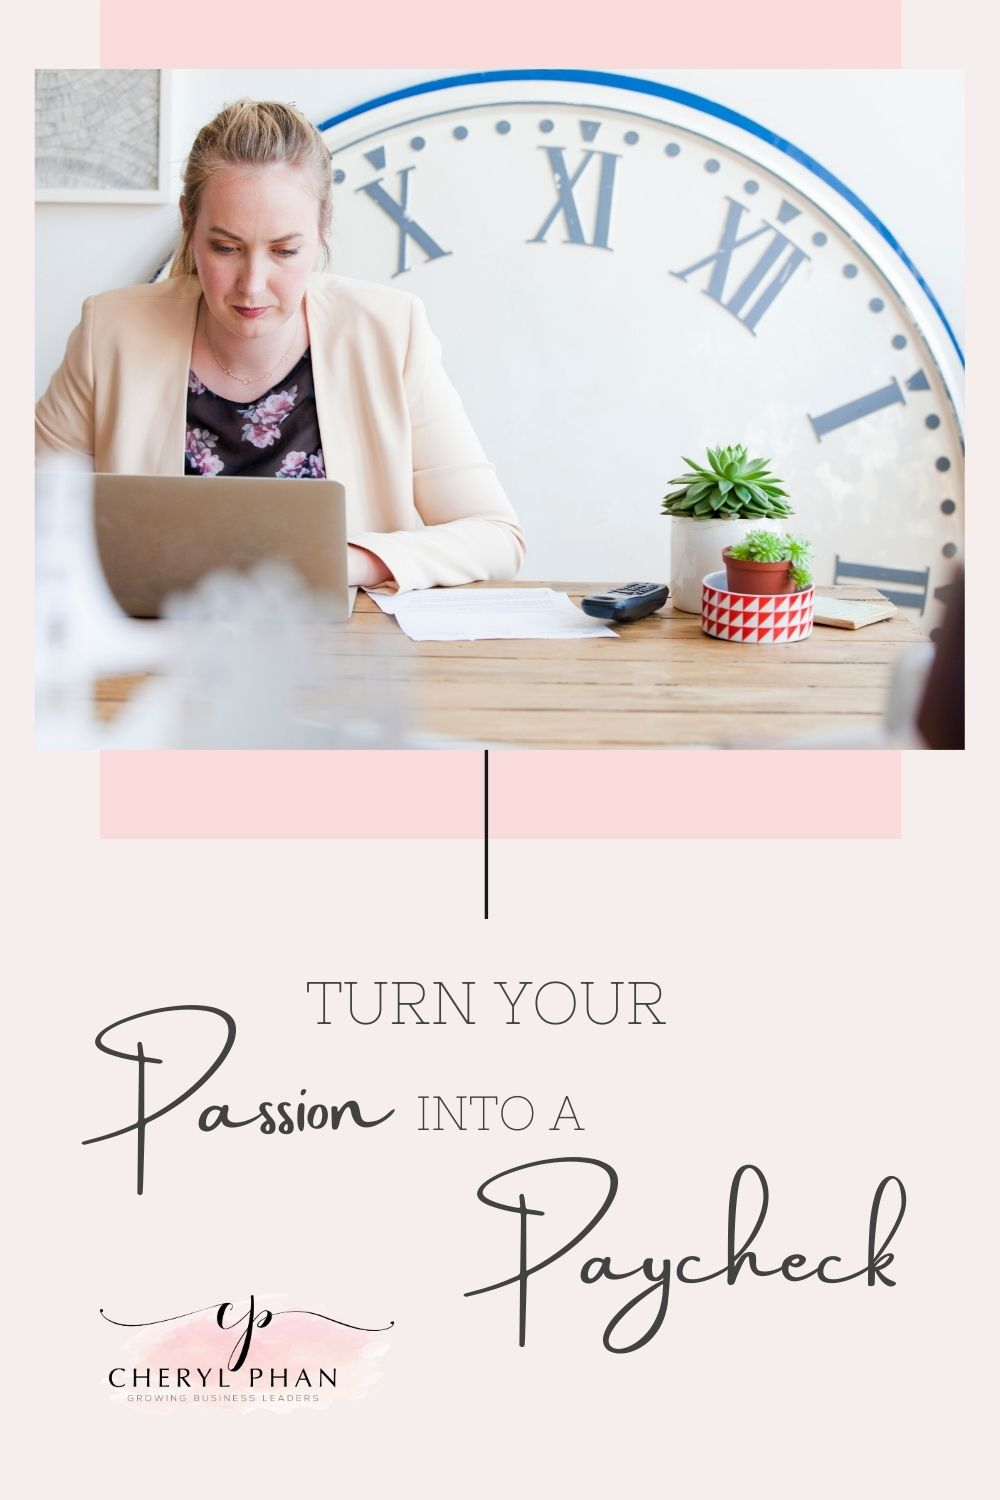 Turn Your Passion into a Paycheck